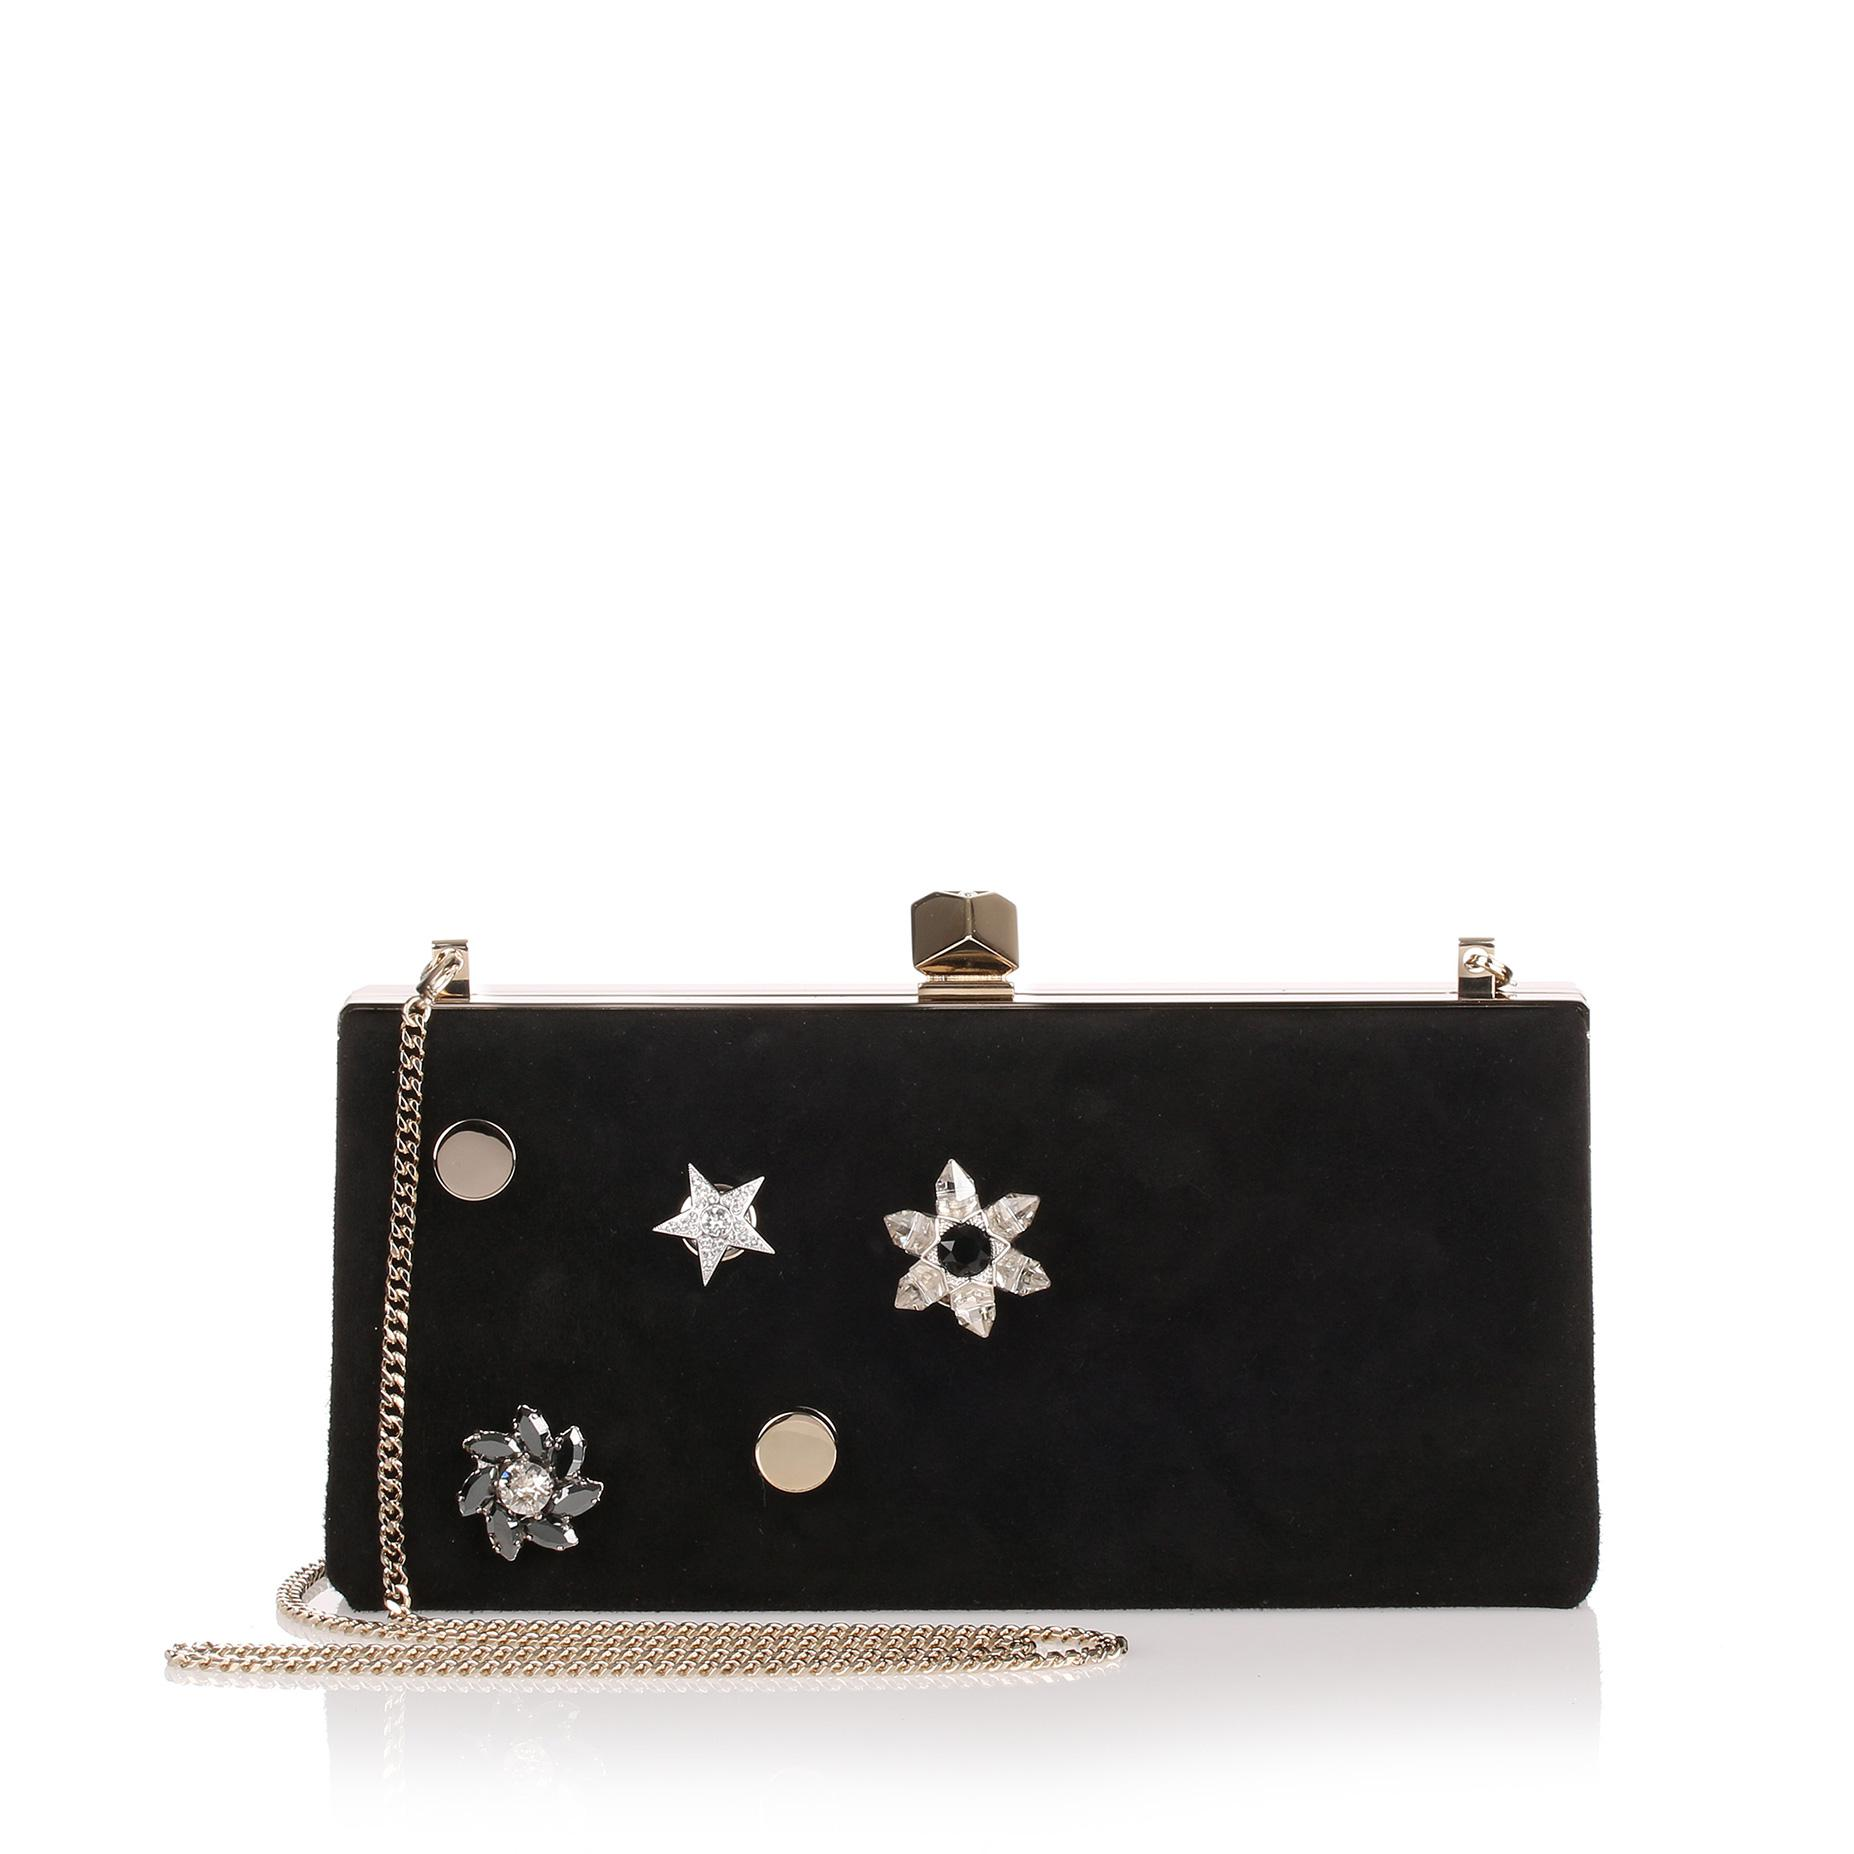 98f739547f Jimmy Choo Celeste Small Black Suede Clutch in Black - Lyst